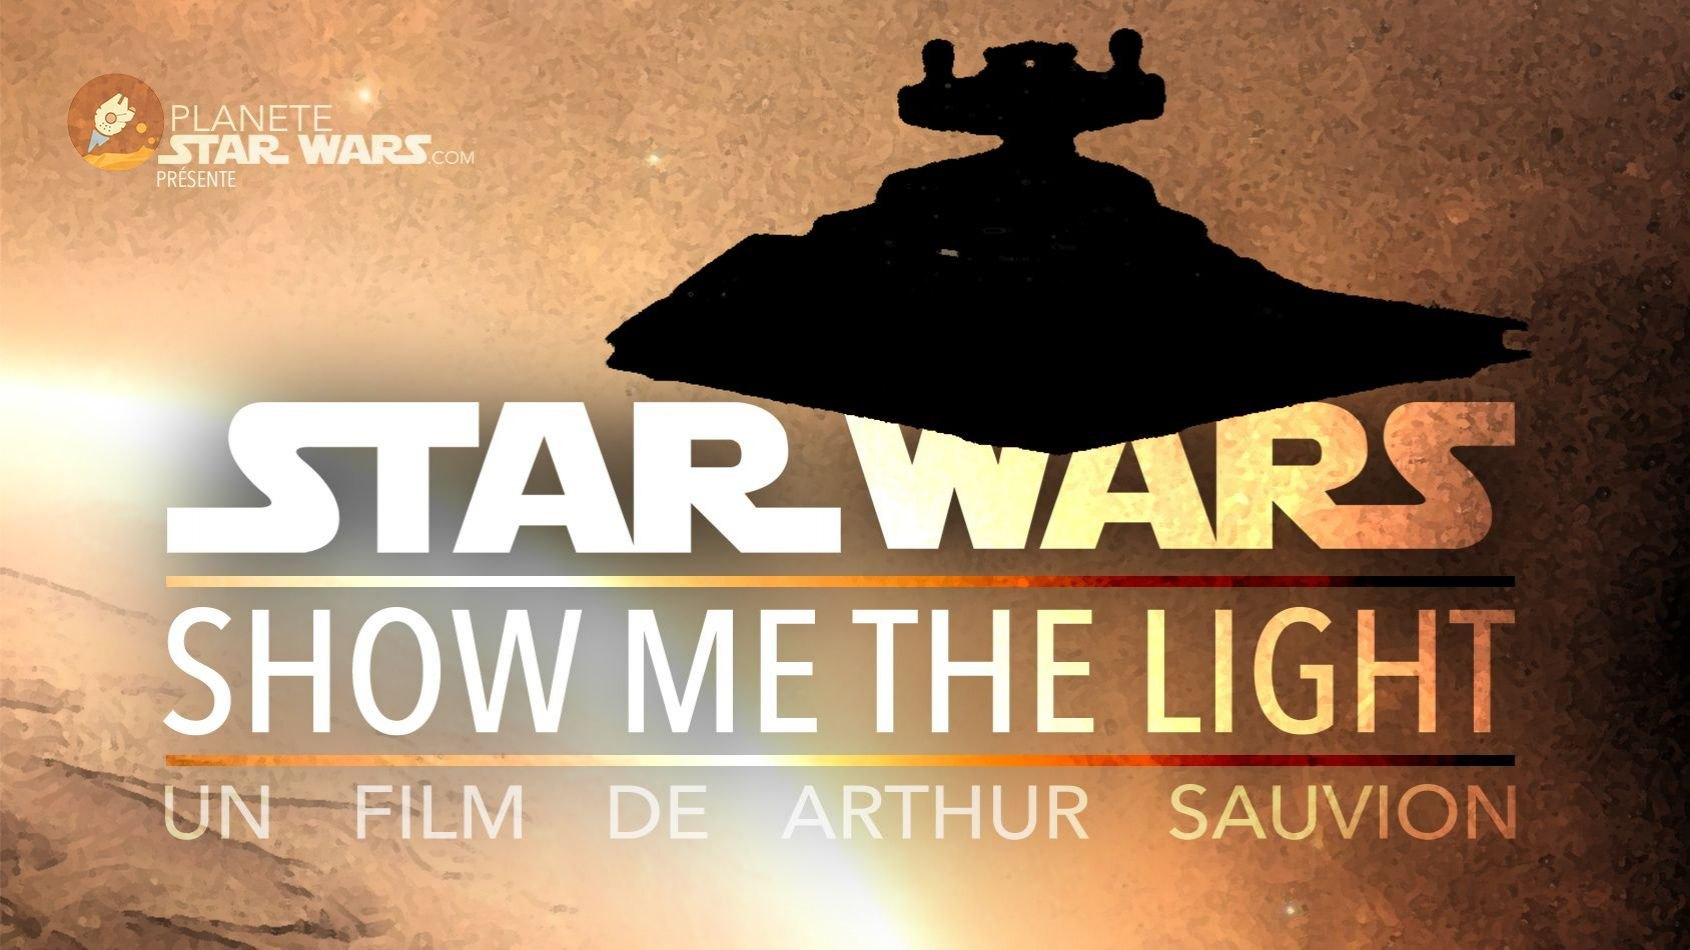 Des nouvelles de Star Wars - Show Me The Light